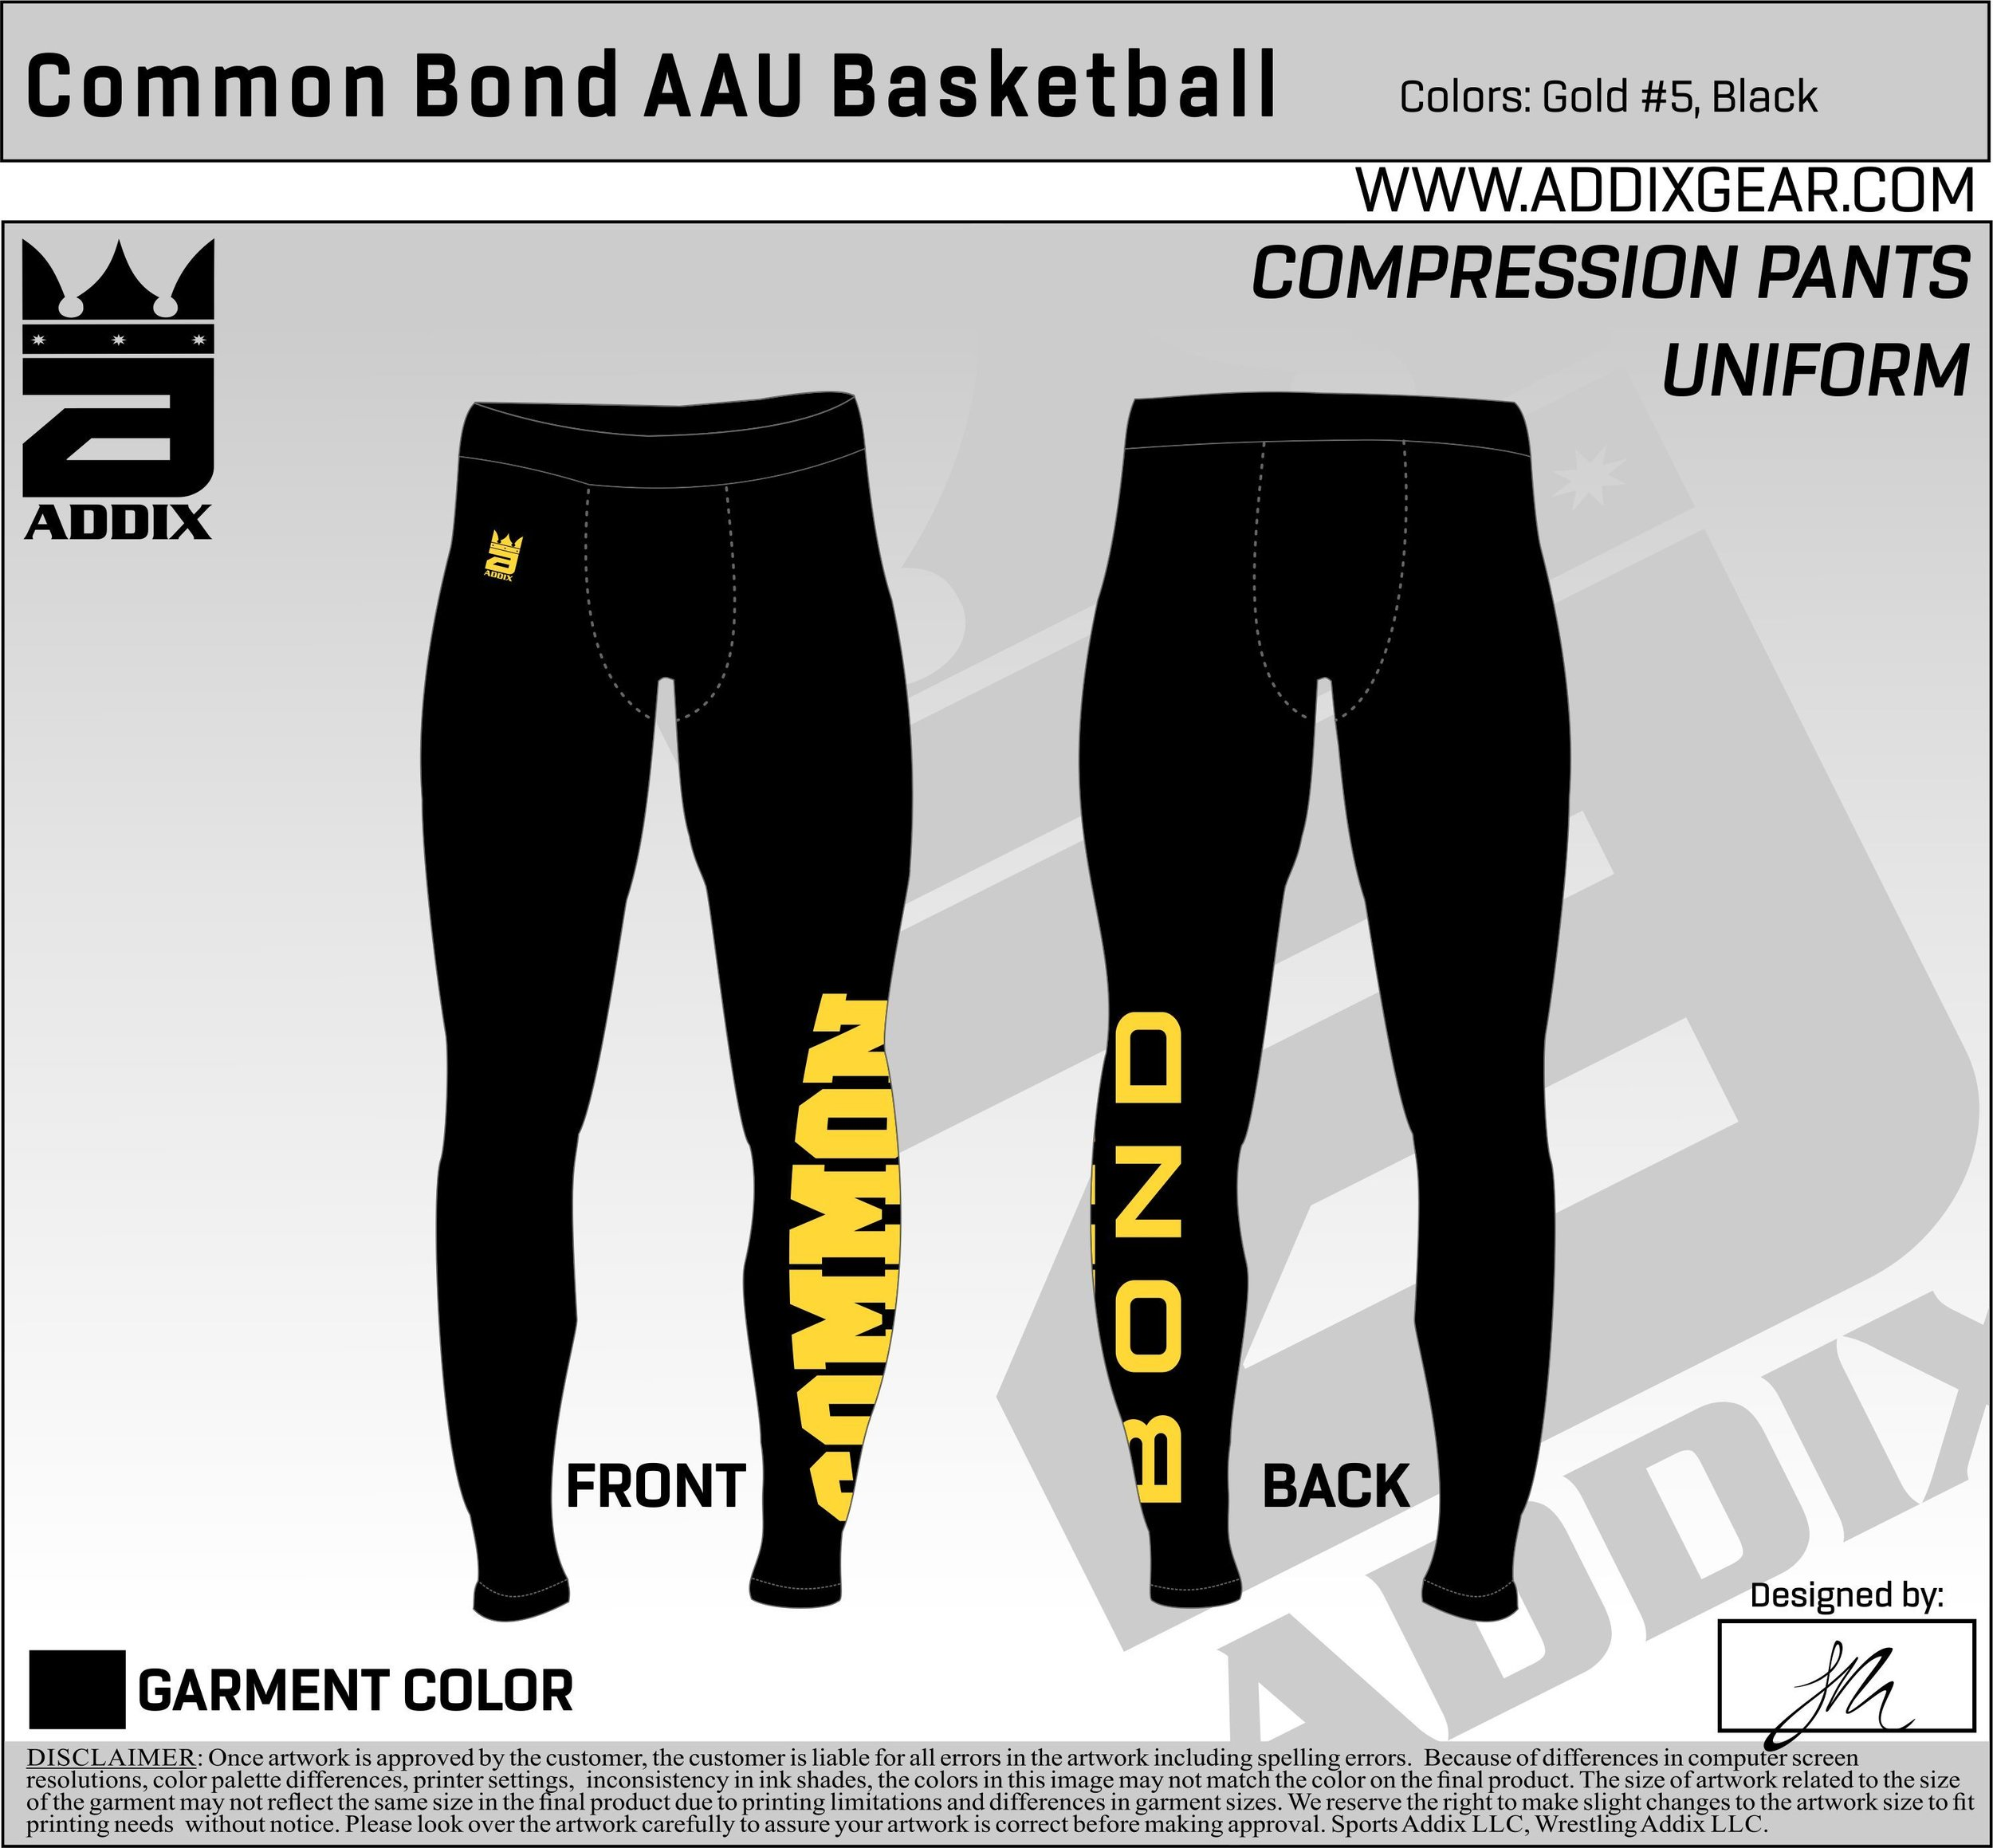 2017LM 5-1 Common Bond AAU Basketball_17_10-30_compression pants.jpg